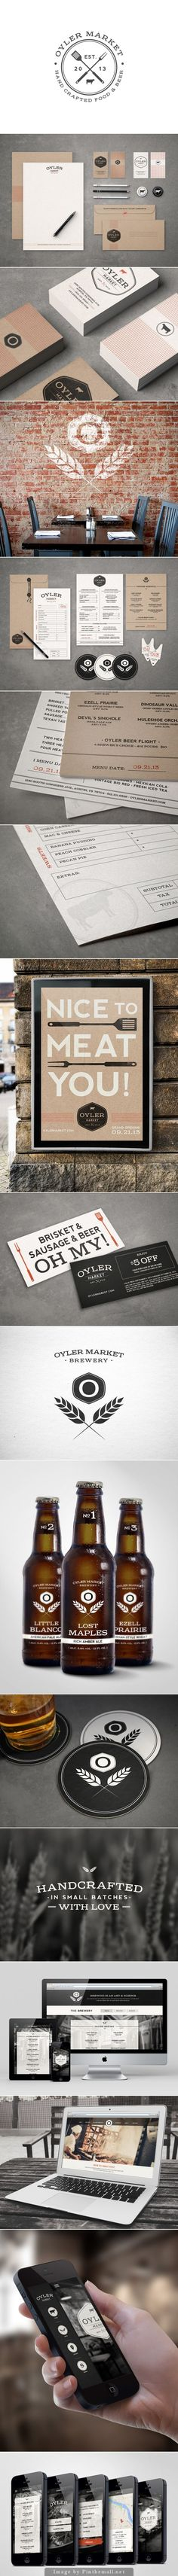 Lunchtime at Oyler Market #identity #packaging #branding